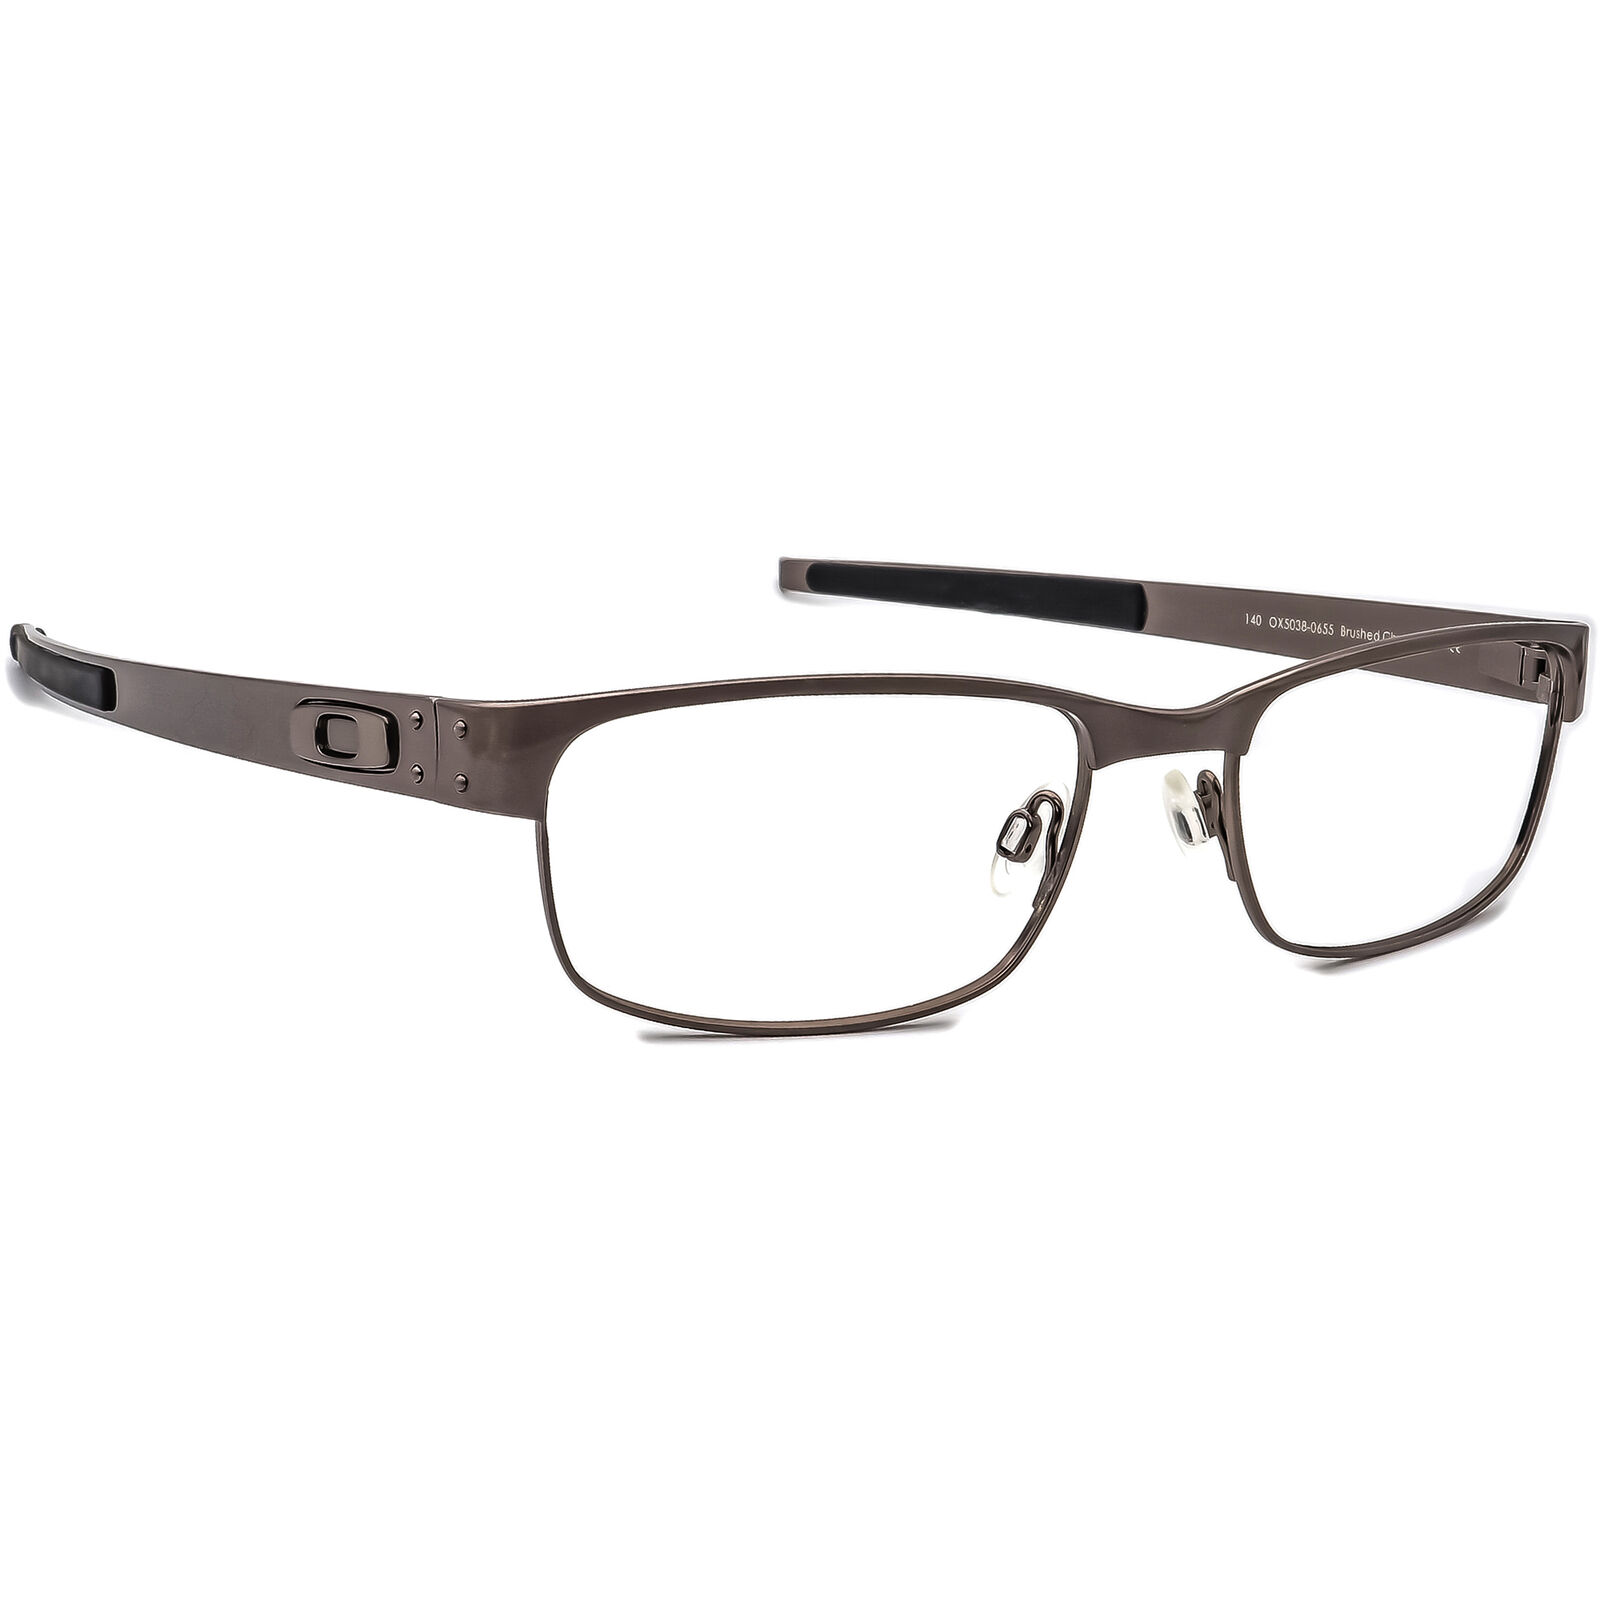 Oakley OX5038-0655 Metal Plate Brushed Chrome  Eyeglasses